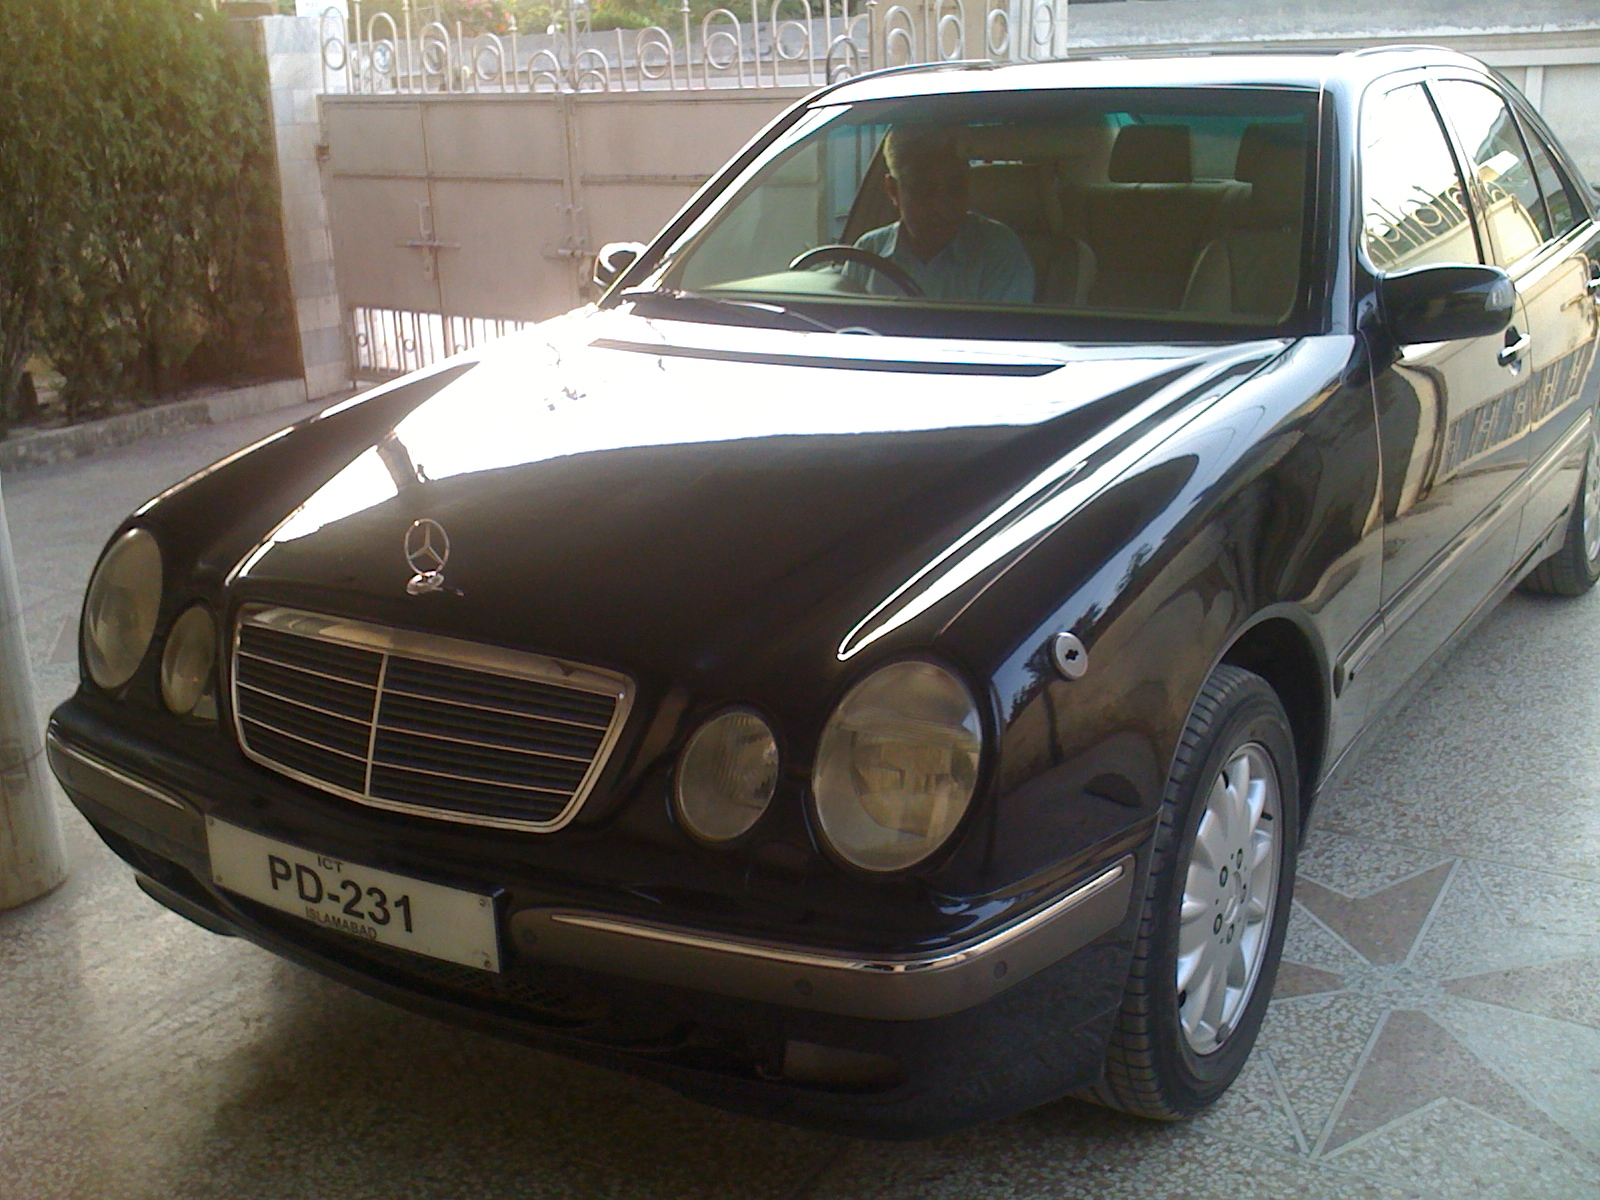 Mercedes benz e class 2001 of faisalhanif13 member ride for 2001 mercedes benz e320